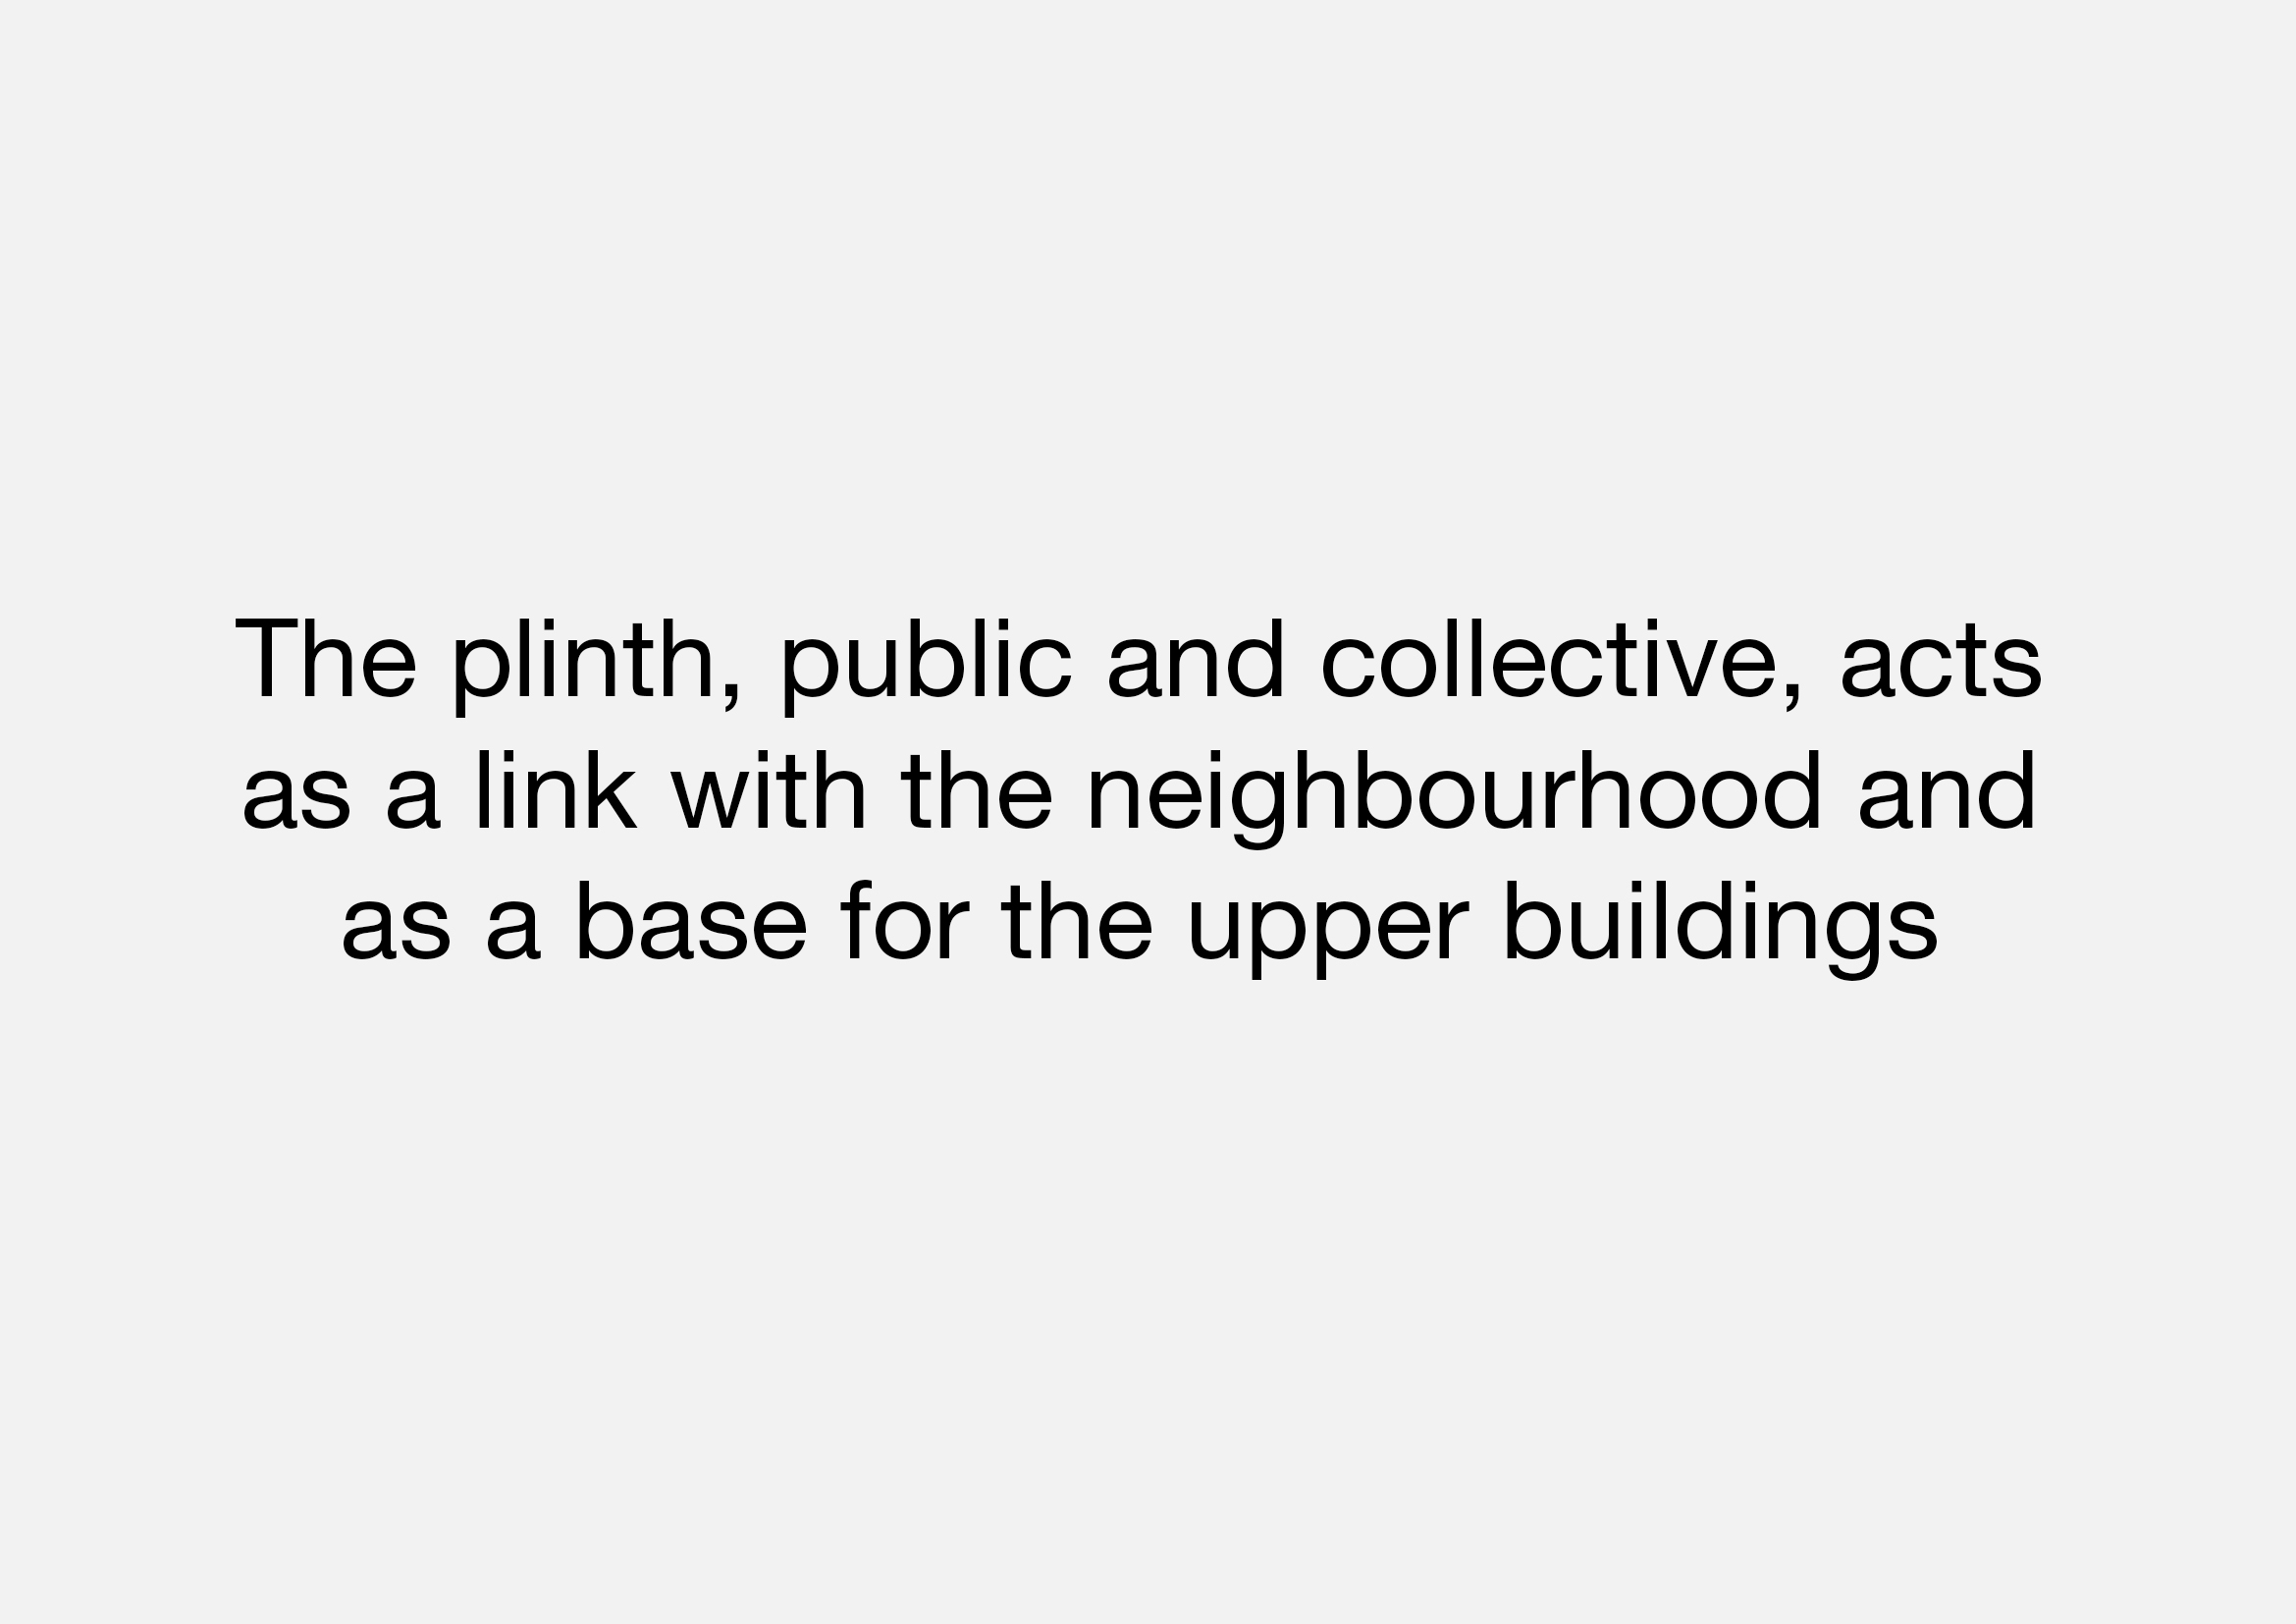 The plinth with a strong public and collective character acts as a connecting part with the neighborhood and is the home base for the two upper buildings